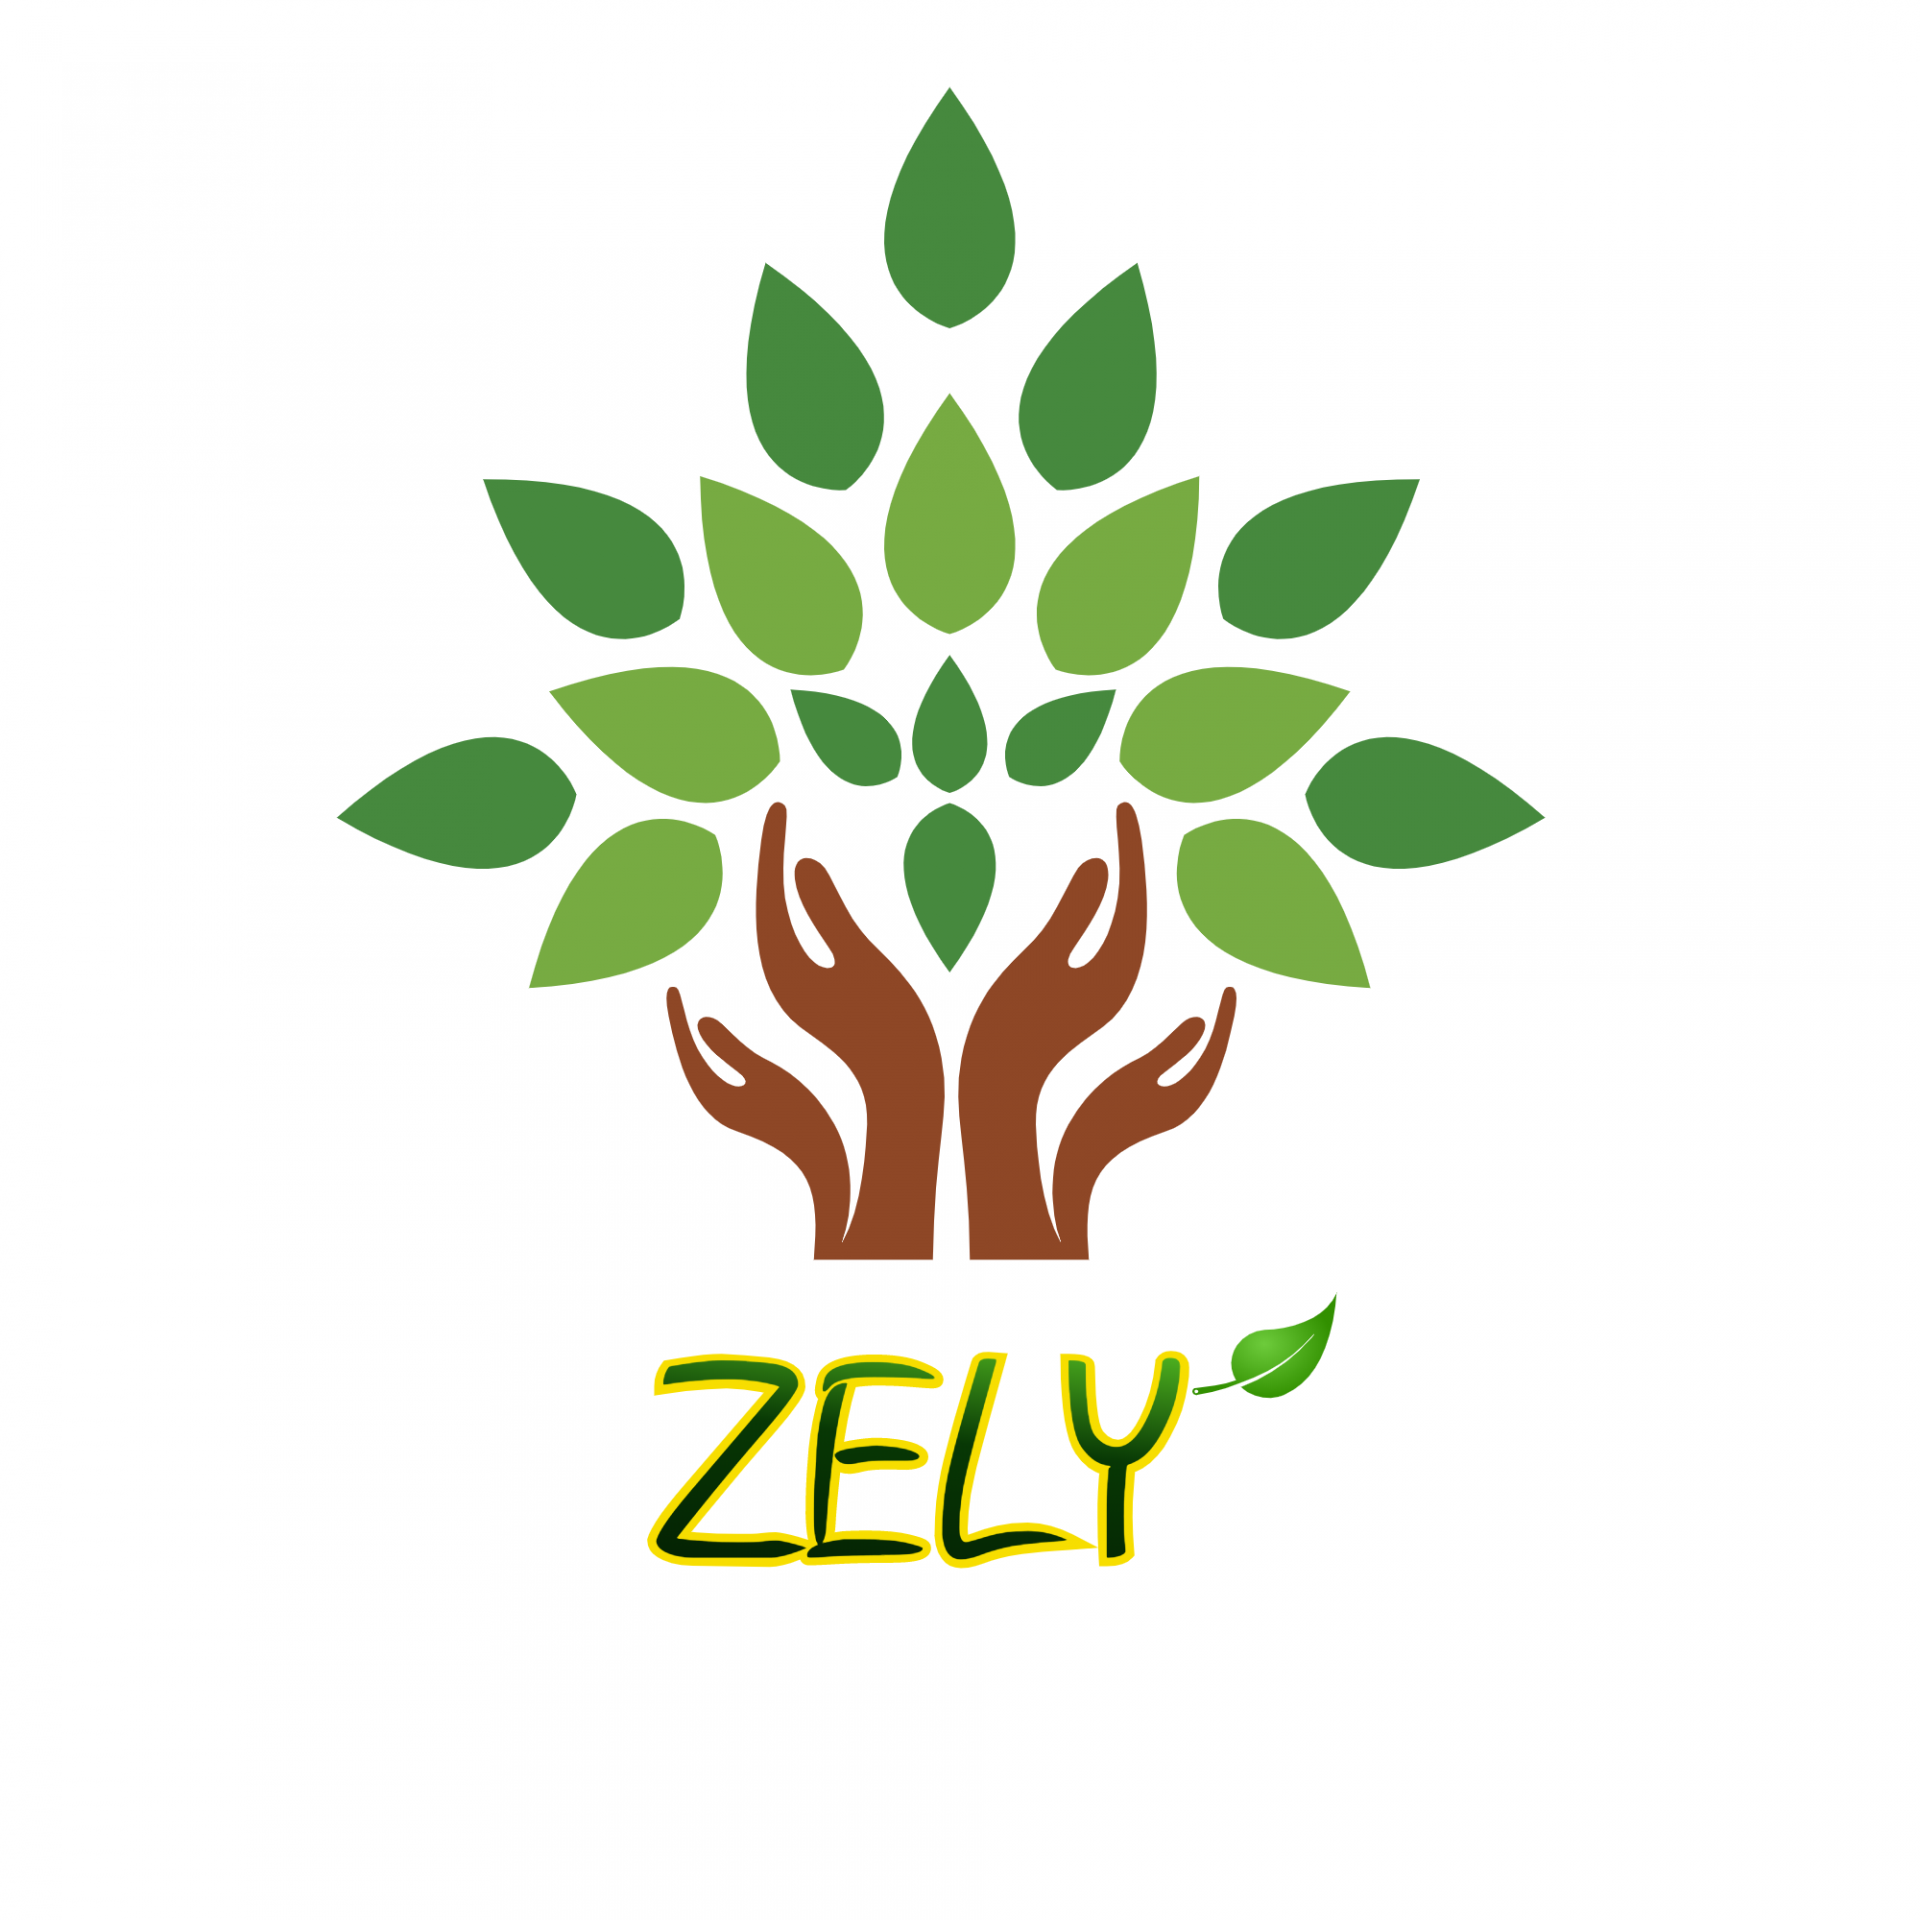 Logo Công ty TNHH Zely